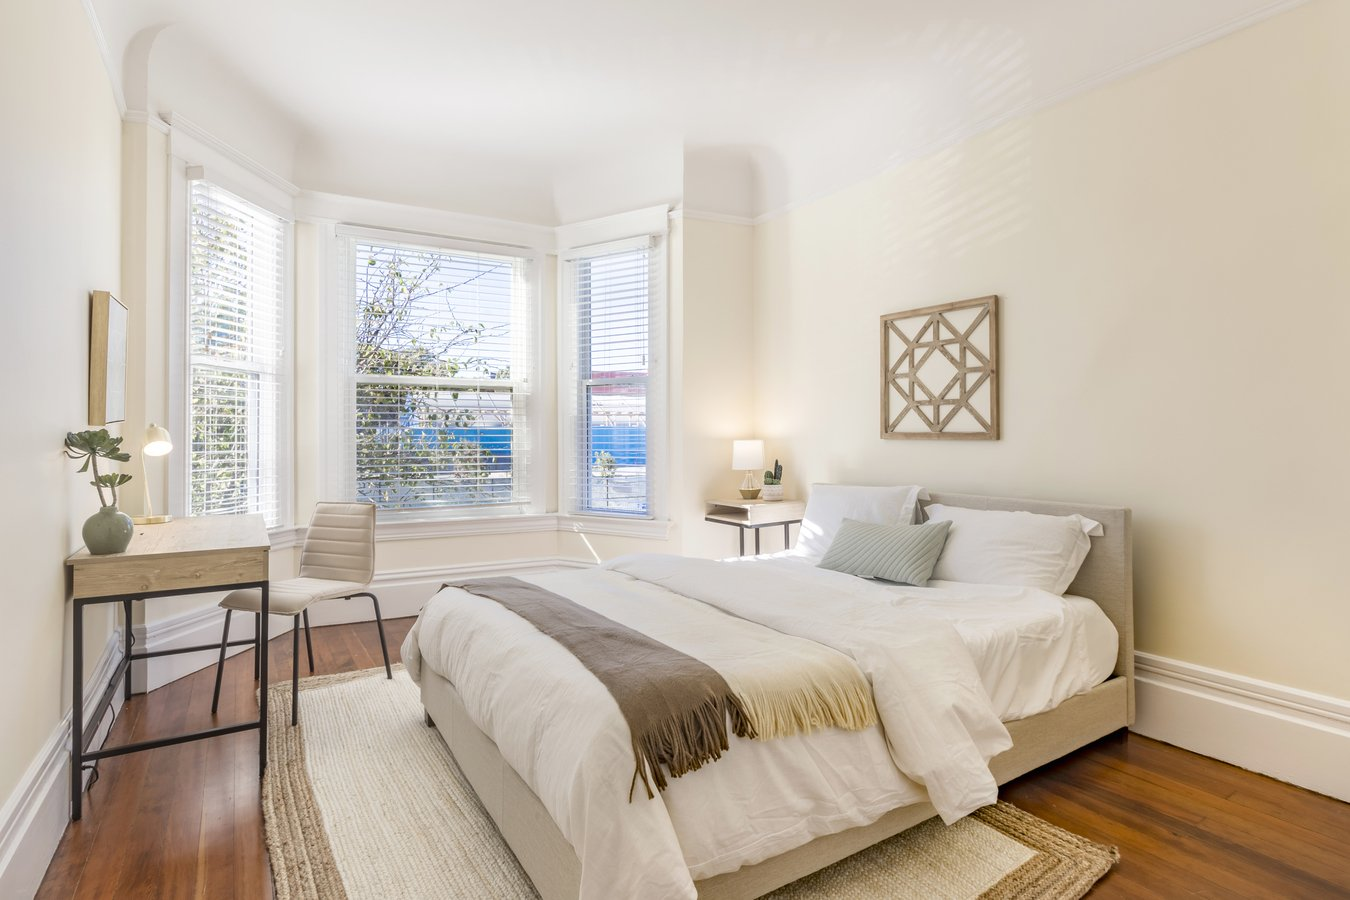 1 Bedroom 1 Bathroom House for rent at S Van Ness Ave & 14Th St Coliving in San Francisco, CA